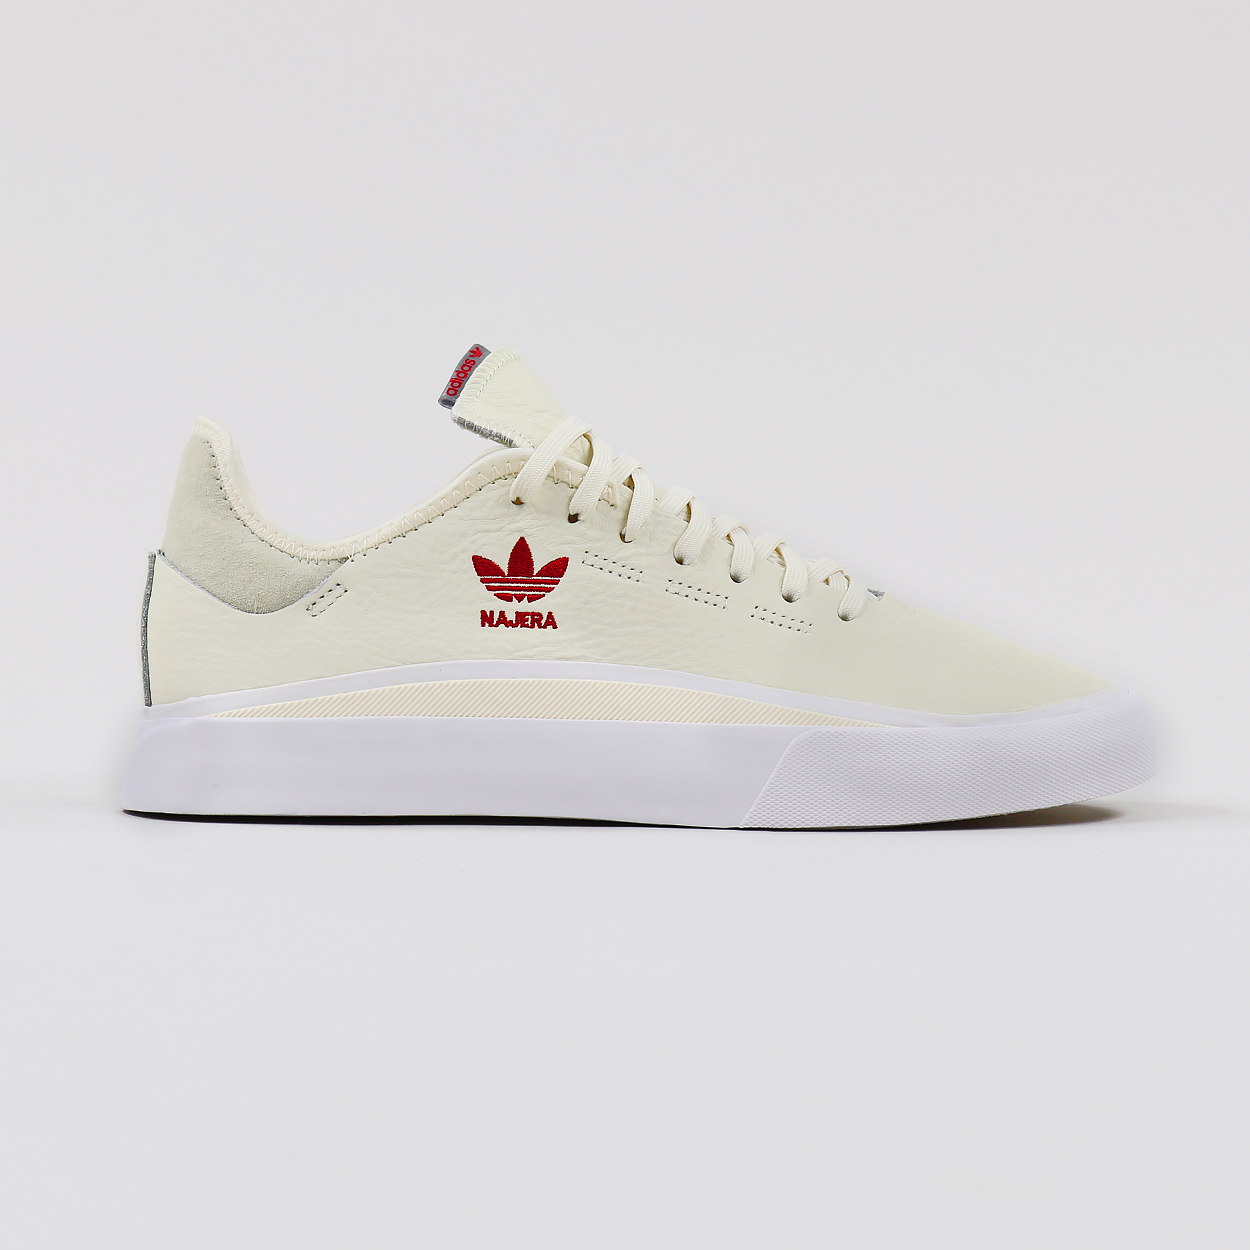 ec3b0633 Adidas Skateboarding Mens Leather Sabalo Trainers Shoes White Red £52.00